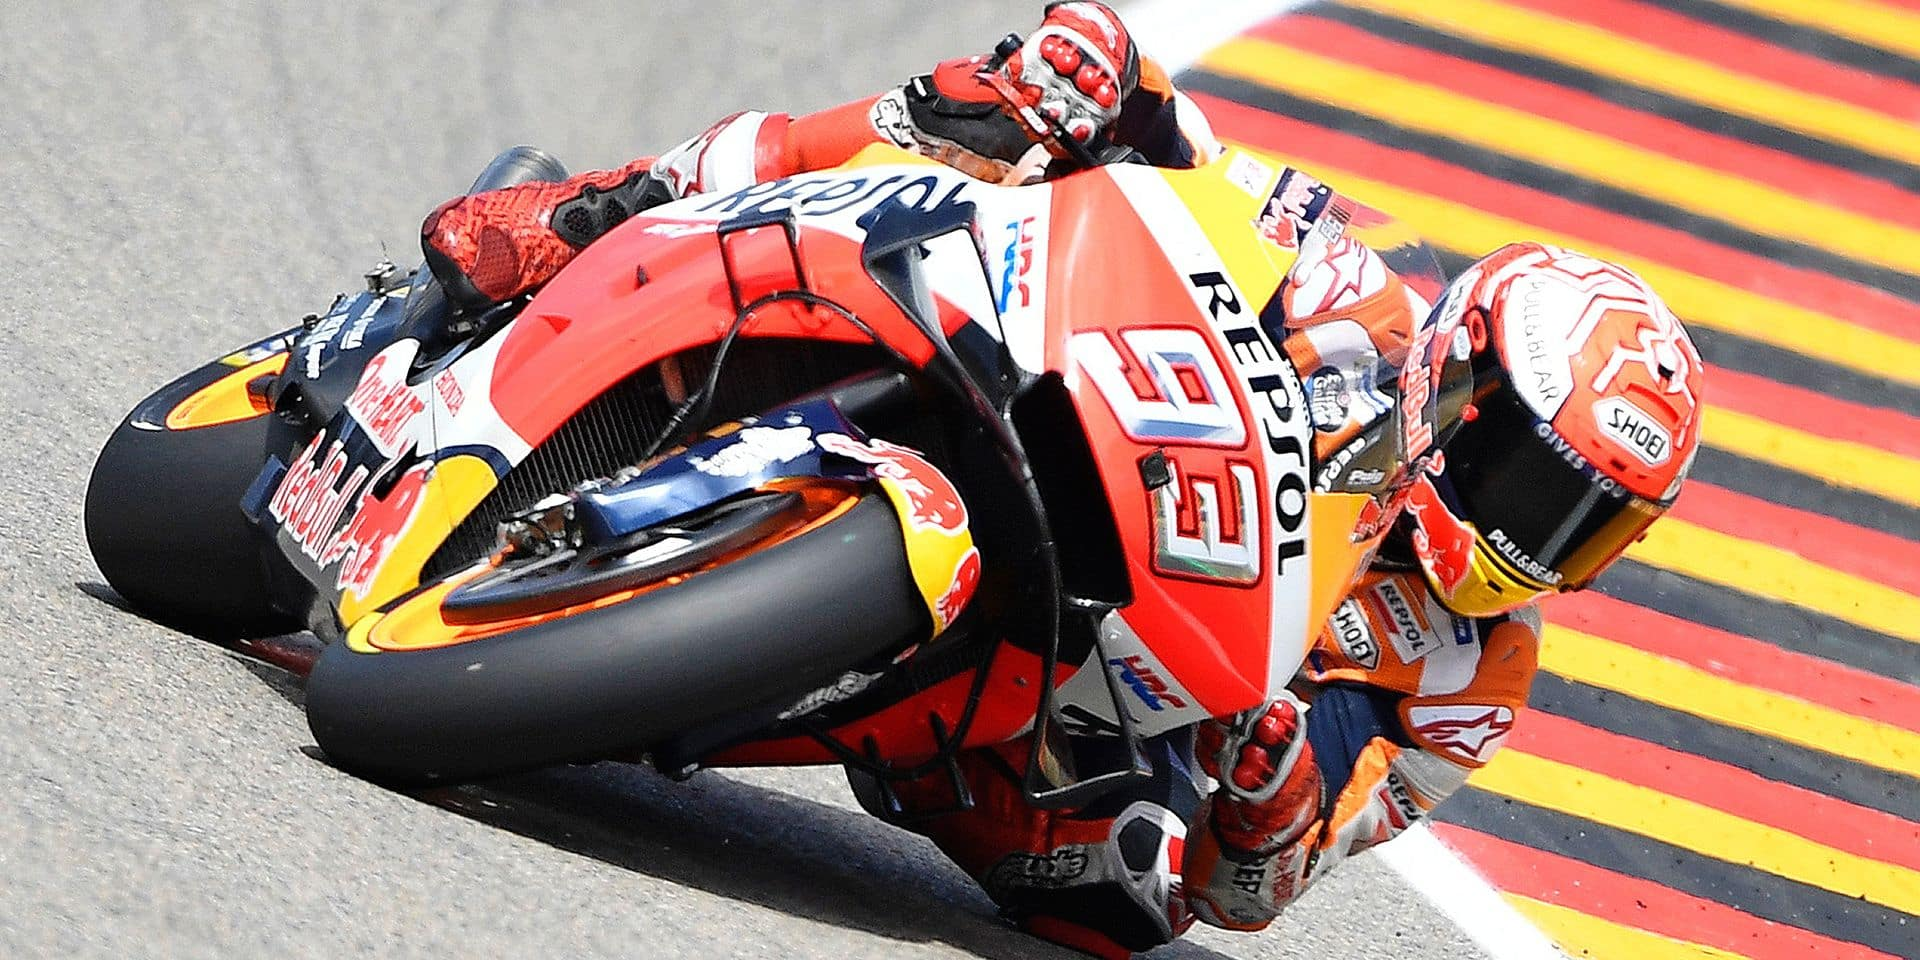 MotoGP Honda rider Marc Marquez of Spain steers his motorcycle during the MotoGP qualifying at German Motorcycle Grand Prix at the Sachsenring circuit in Hohenstein-Ernstthal, Germany, Saturday, July 6, 2019. He won the qualifying. (AP Photo/Jens Meyer)